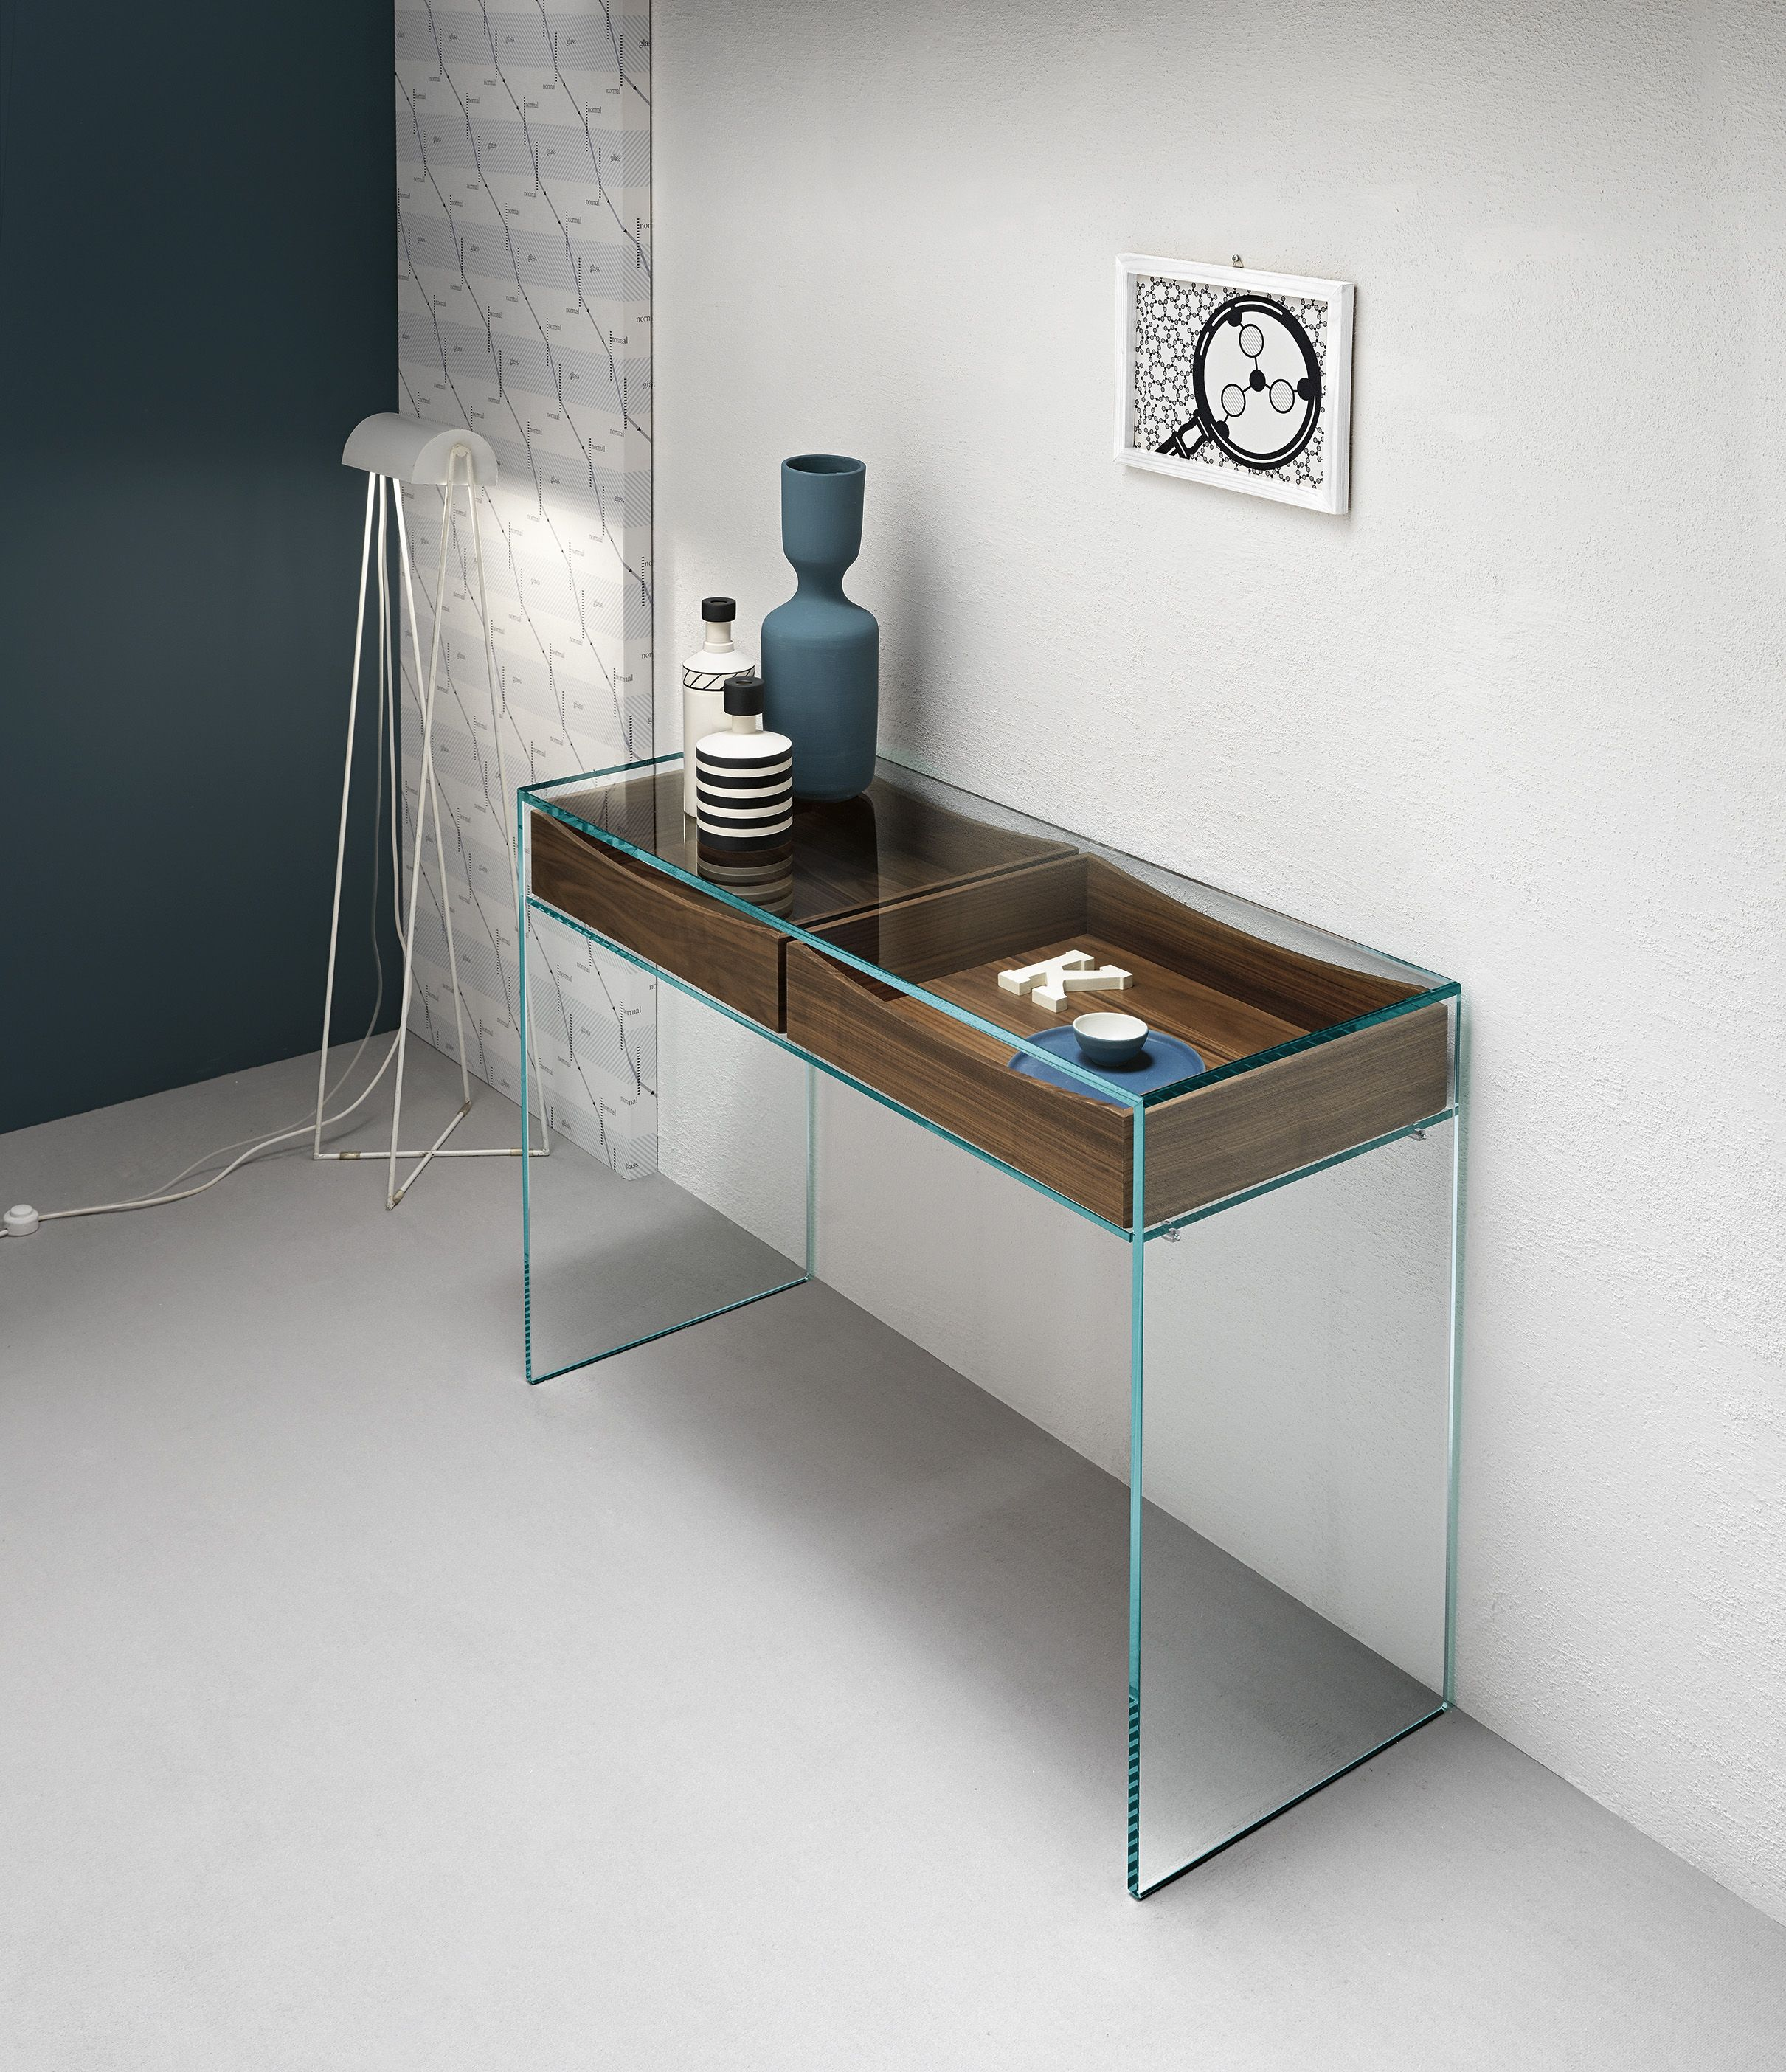 Consolle Vetro Design.Gulliver 2 Glass Consolle Desk With Walnut Drawers